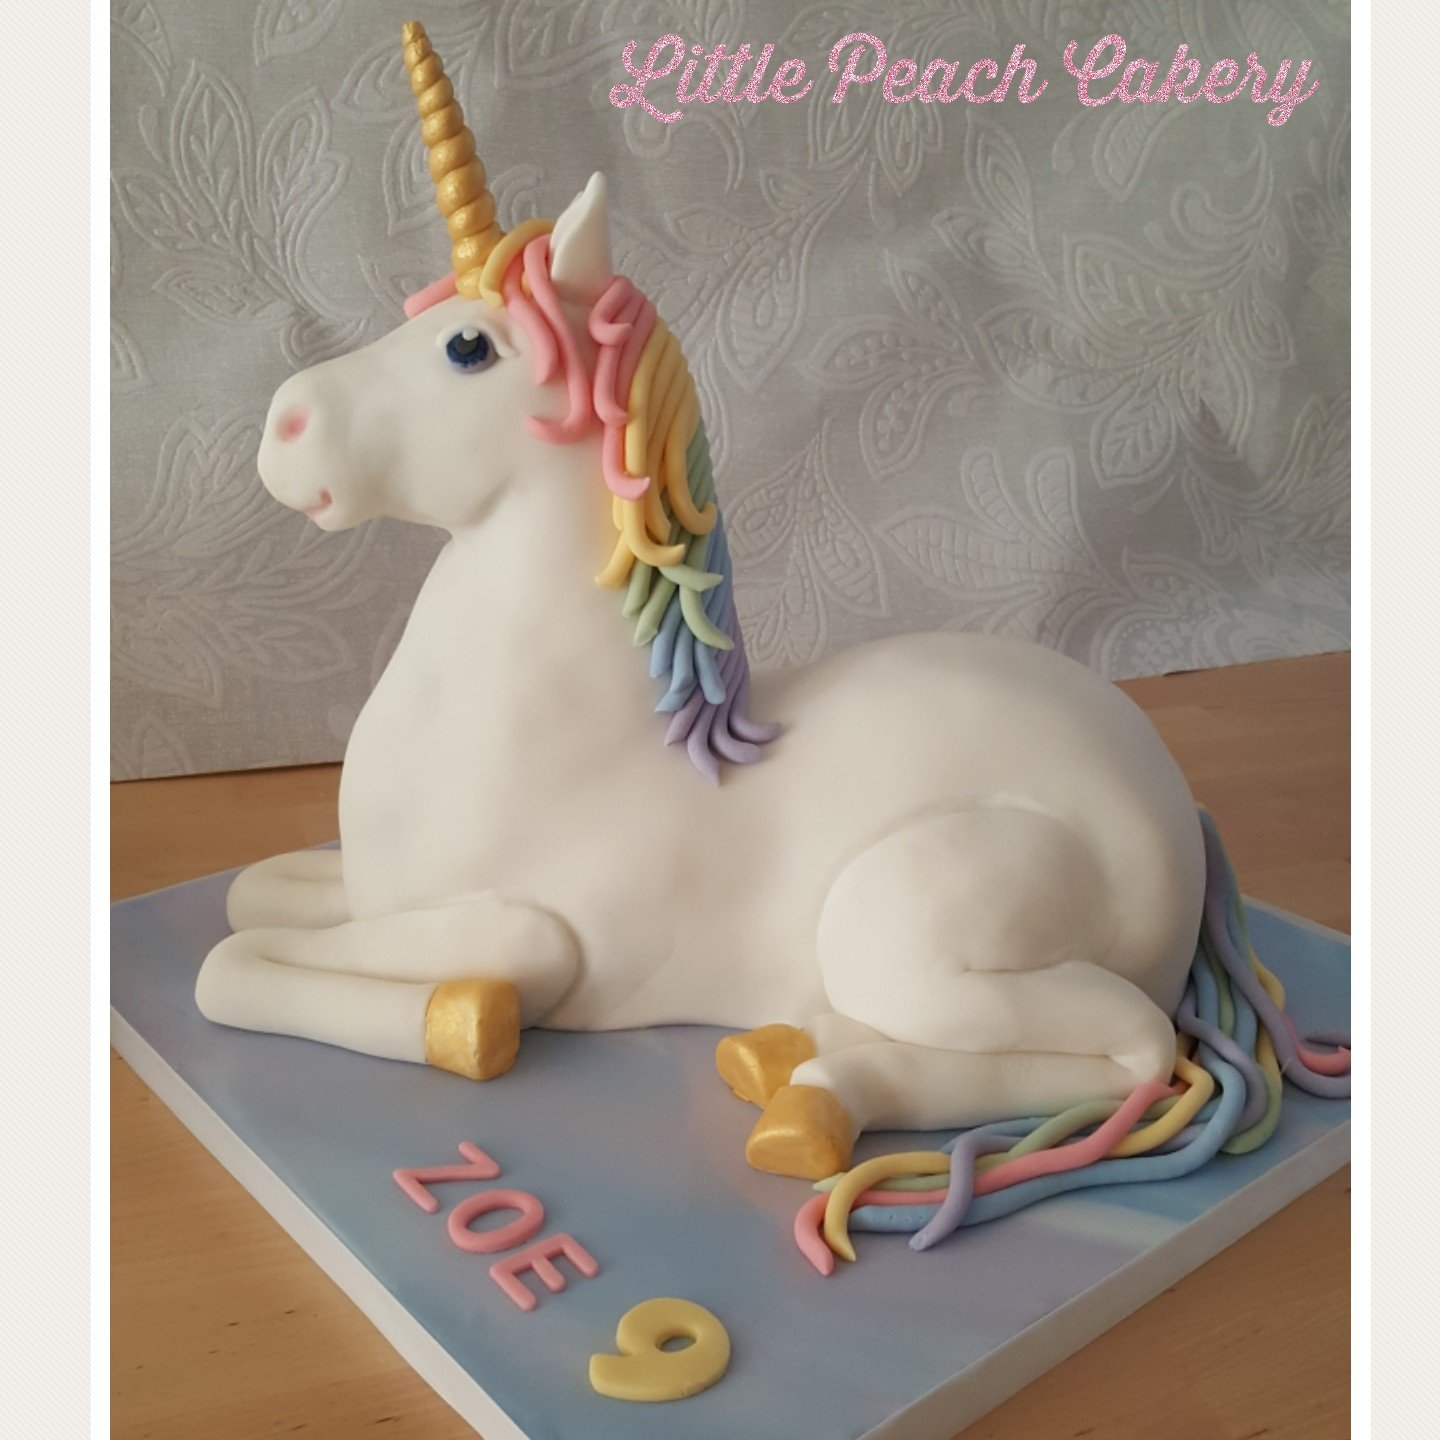 How To Make A 3d Laying Down Rainbow Unicorn Cake Little Peach Cakery